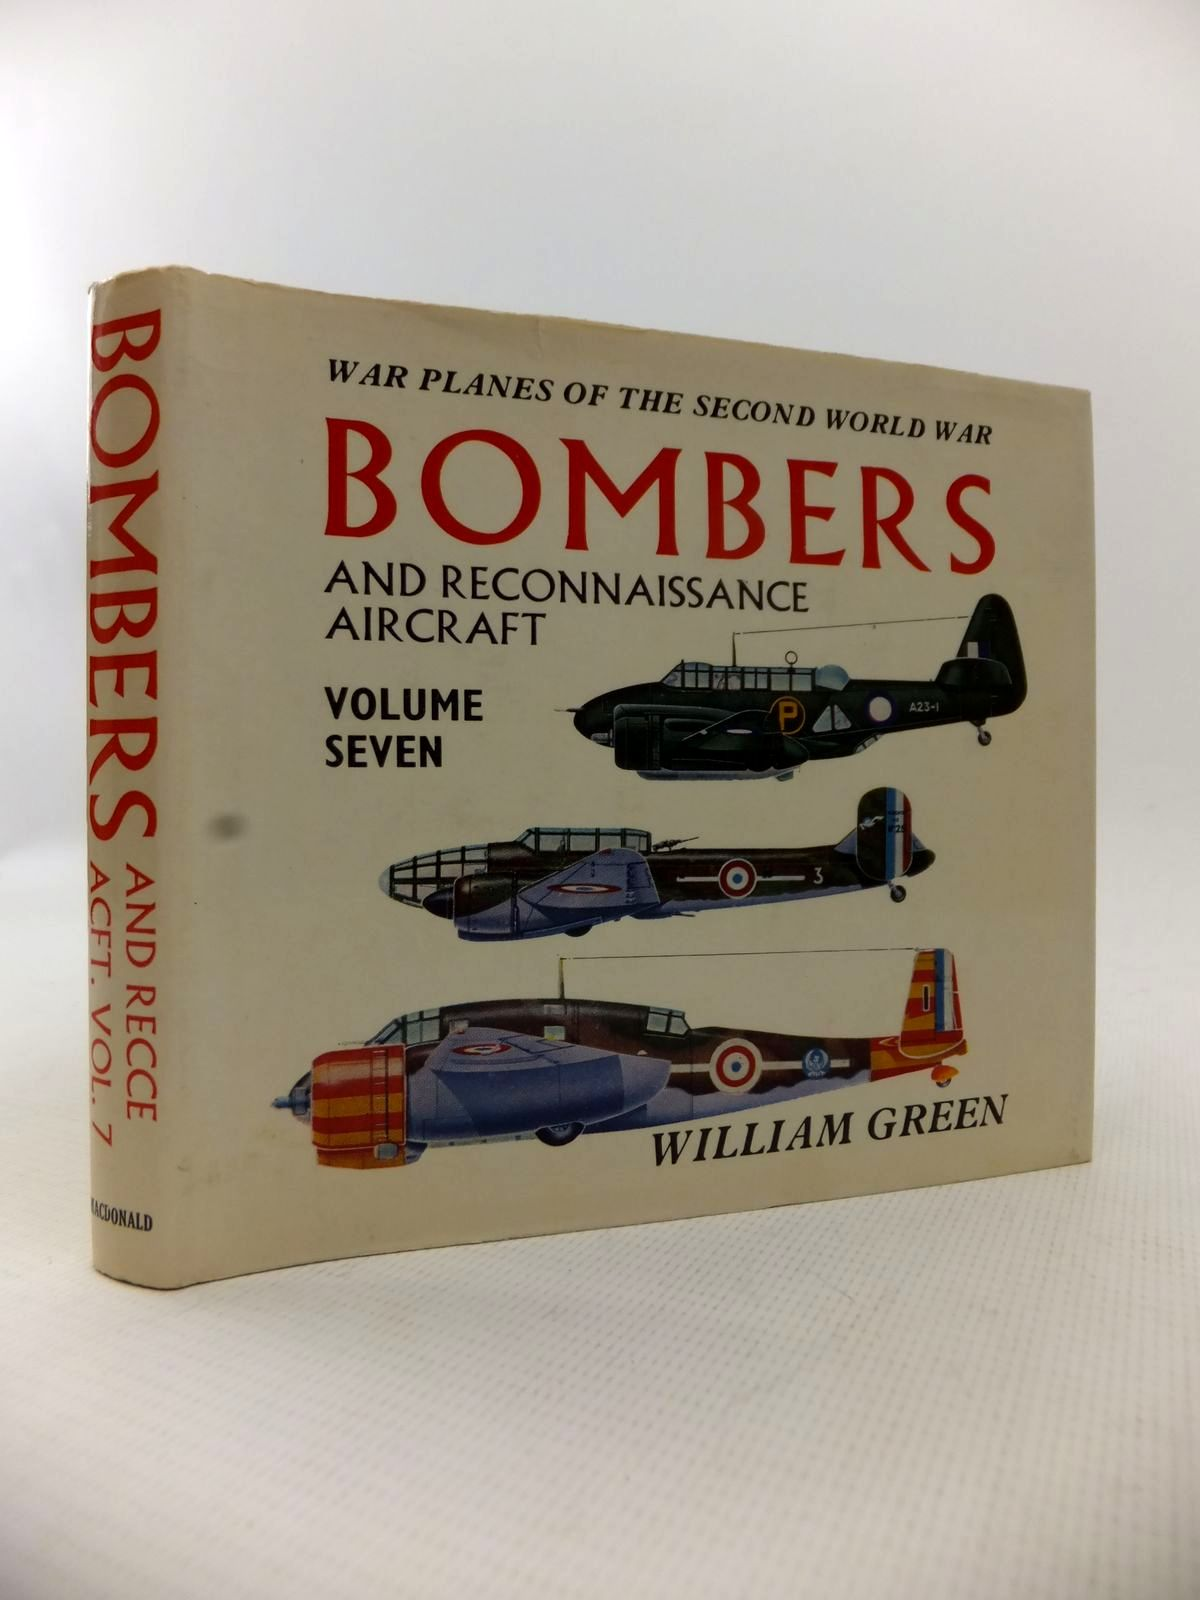 Photo of WAR PLANES OF THE SECOND WORLD WAR BOMBERS AND RECONNAISSANCE AIRCRAFT VOLUME SEVEN written by Green, William illustrated by Punnett, Dennis published by MacDonald (STOCK CODE: 1813578)  for sale by Stella & Rose's Books